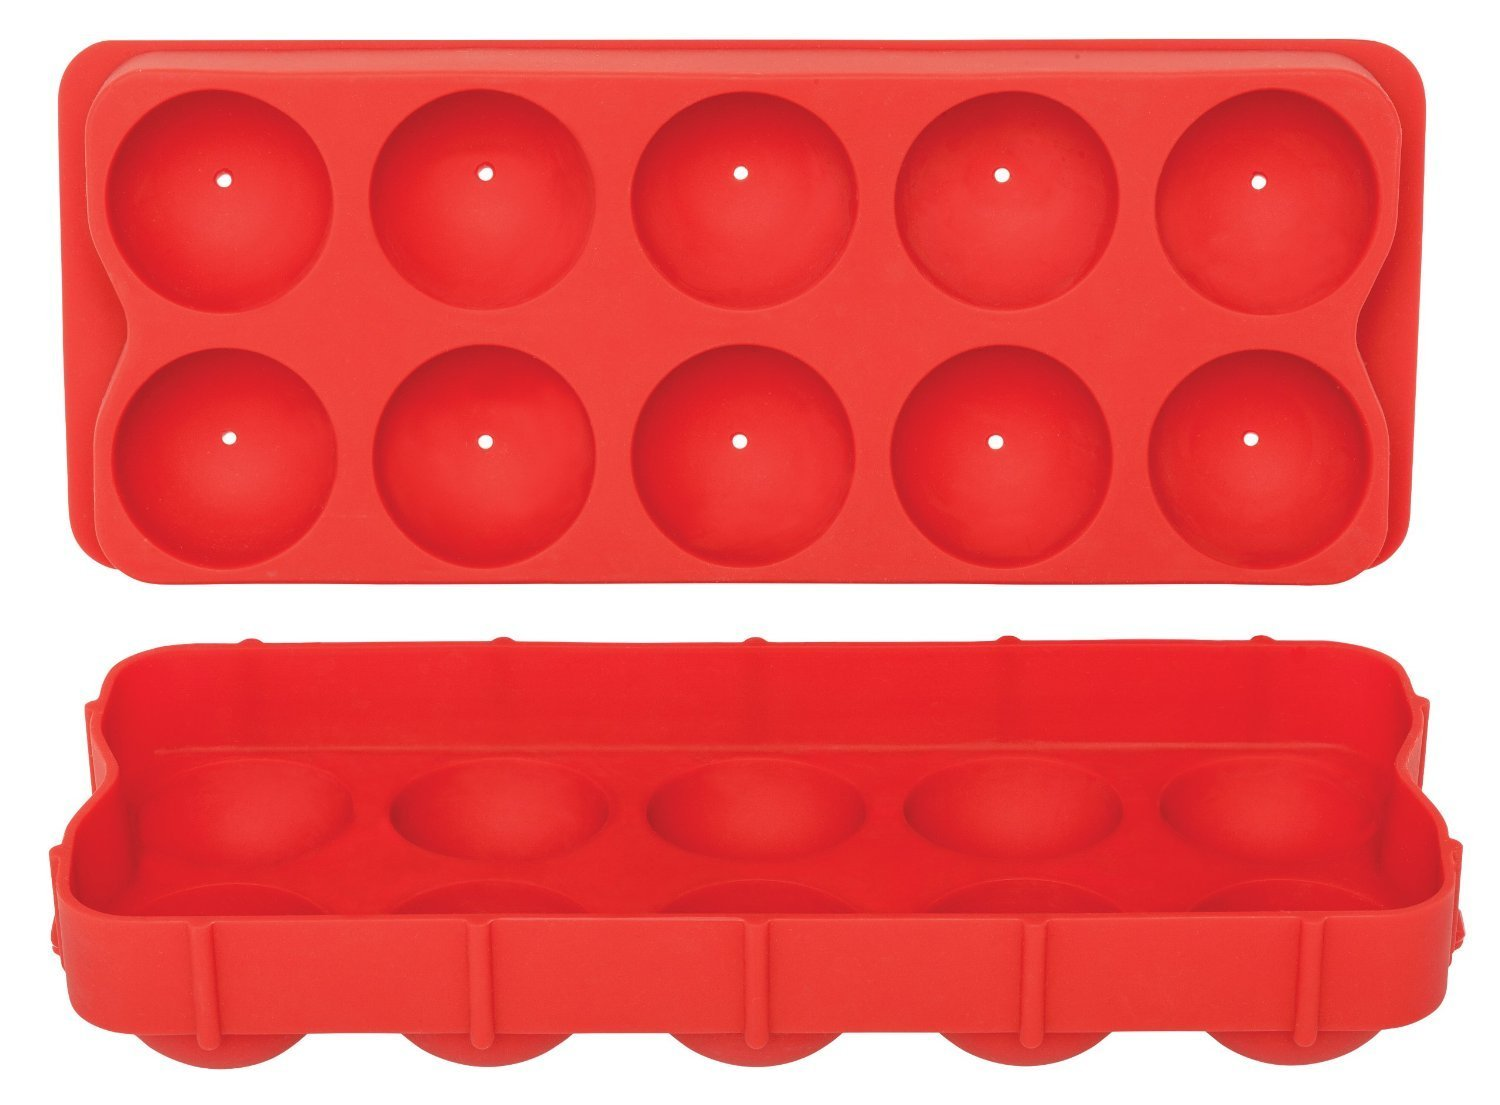 http://www.amazon.com/HIC-Silicone-Cannonball-Ball-Mold/dp/B00D461YBQ/ref=sr_1_32?ie=UTF8&qid=1415651125&sr=8-32&keywords=ball+molds